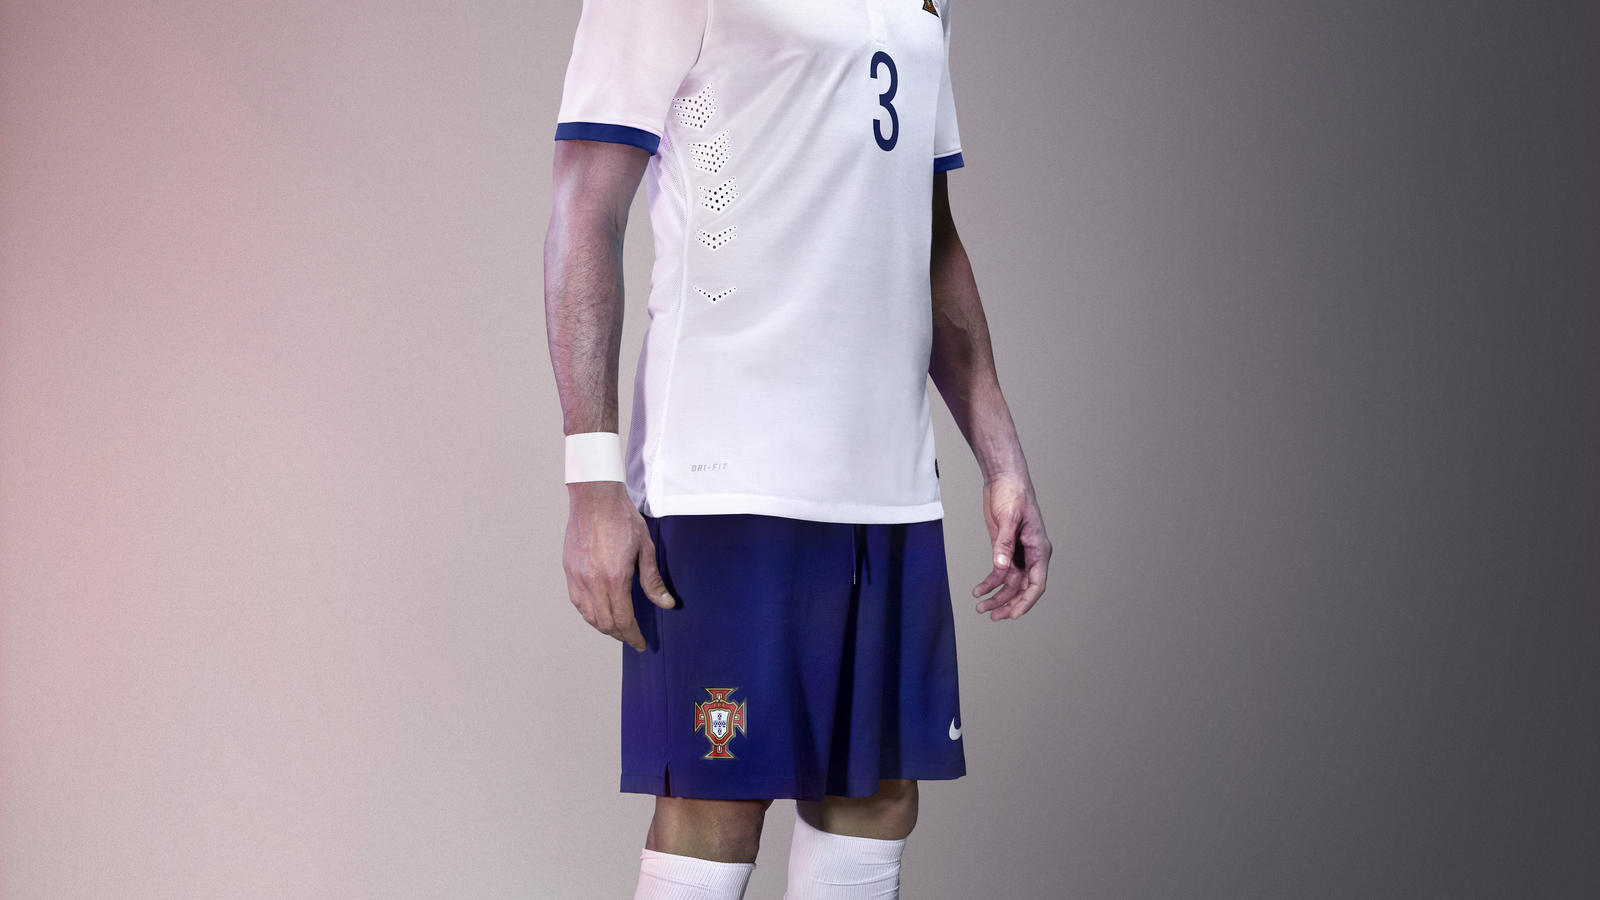 Pepe in the new Portugal away kit